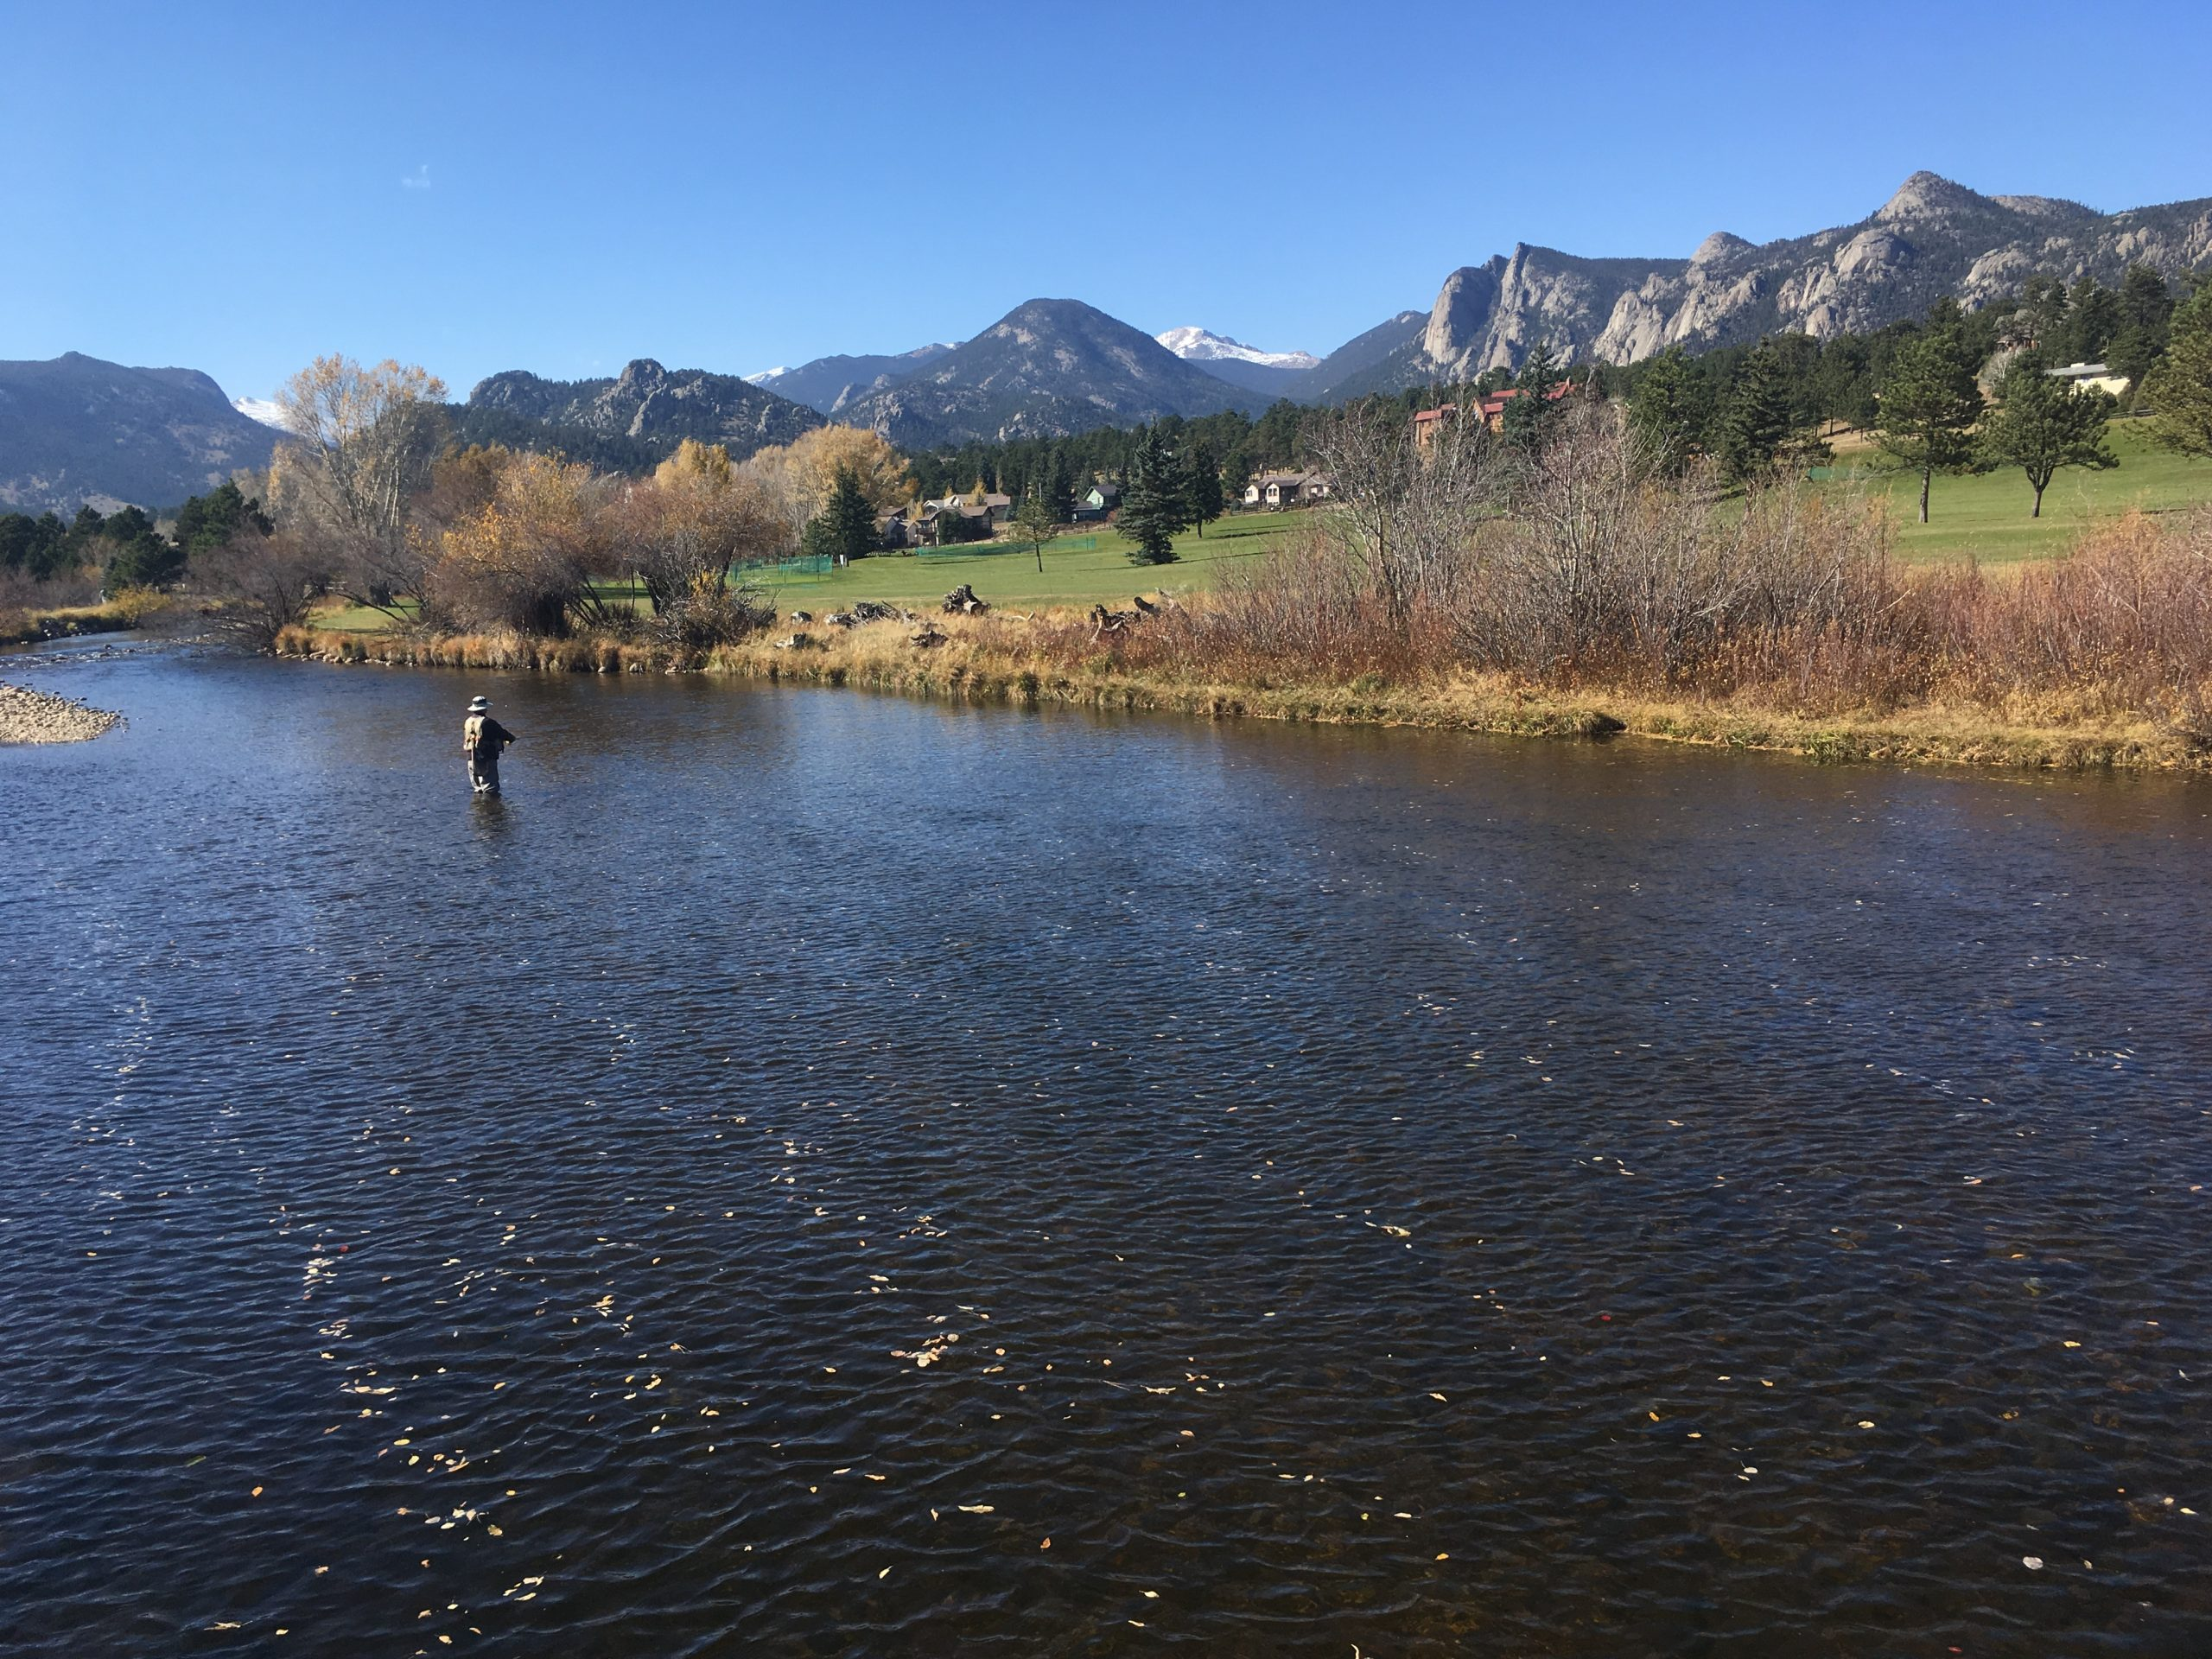 This is an image of Fly fishing the Big Thompson River before it empties into Estes Lake  one mile from This Mountain Life Basecamp and Vacation Rental Cabins.